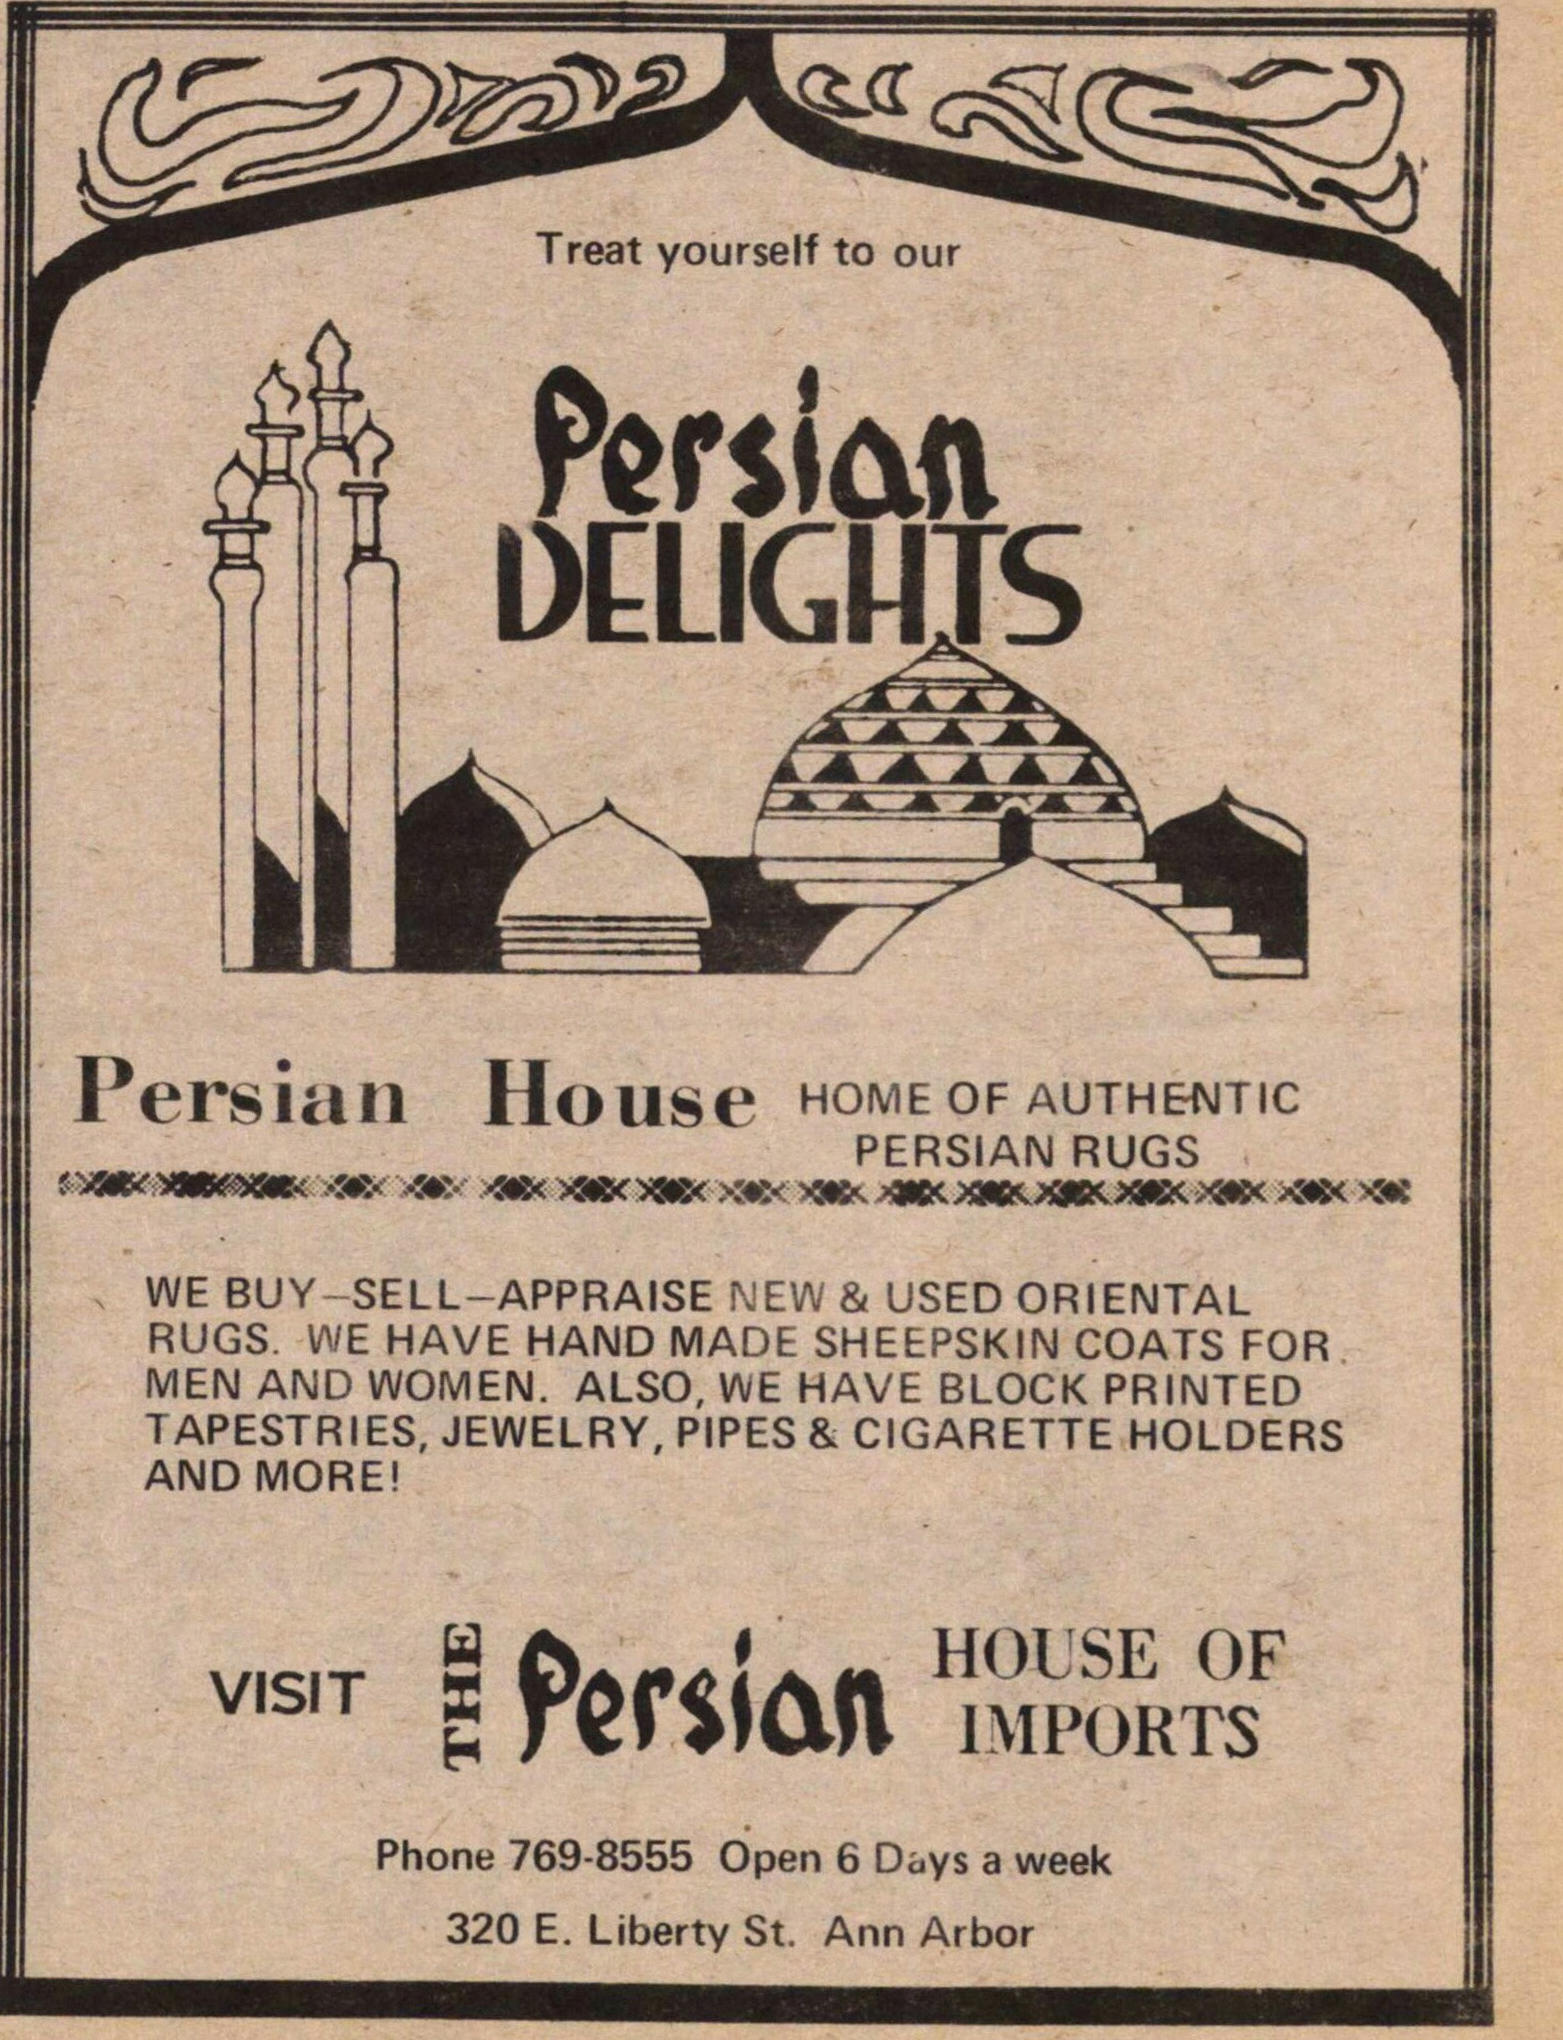 Persian Delights image